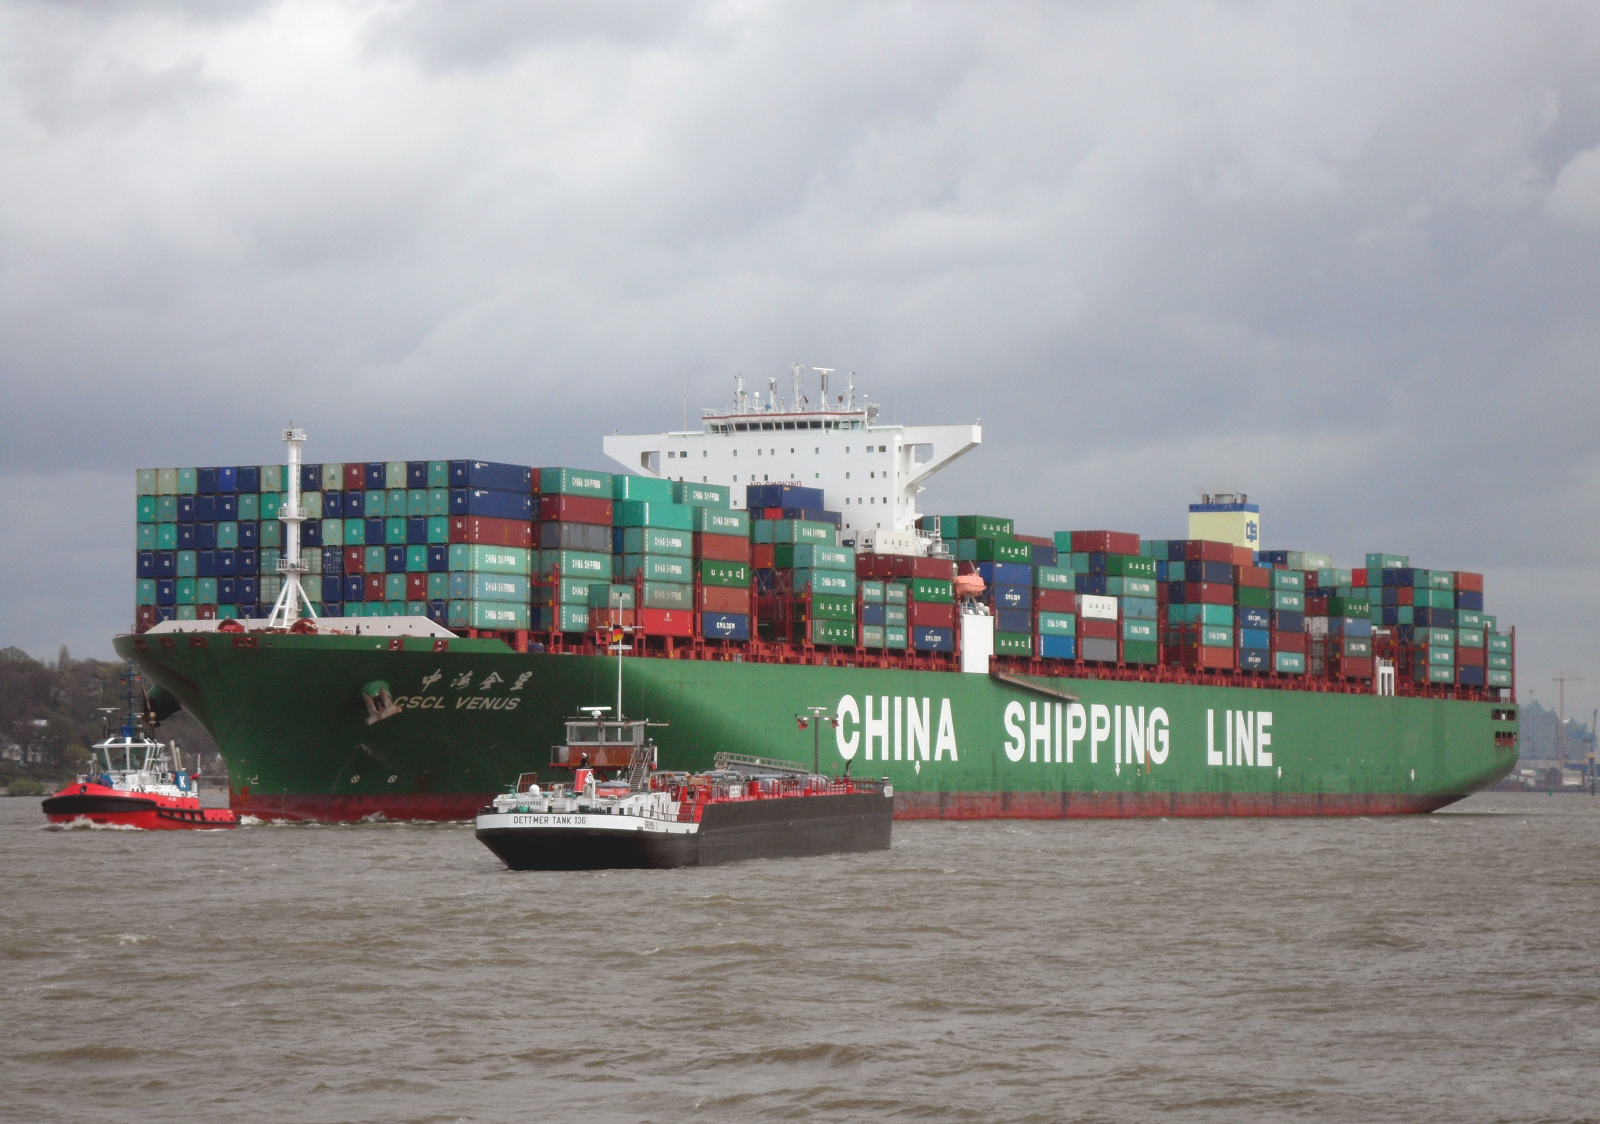 Container_ship_CSCL_Venus_of_the_China_Shipping_Line_outgoing_Hamburg_in_April_2014